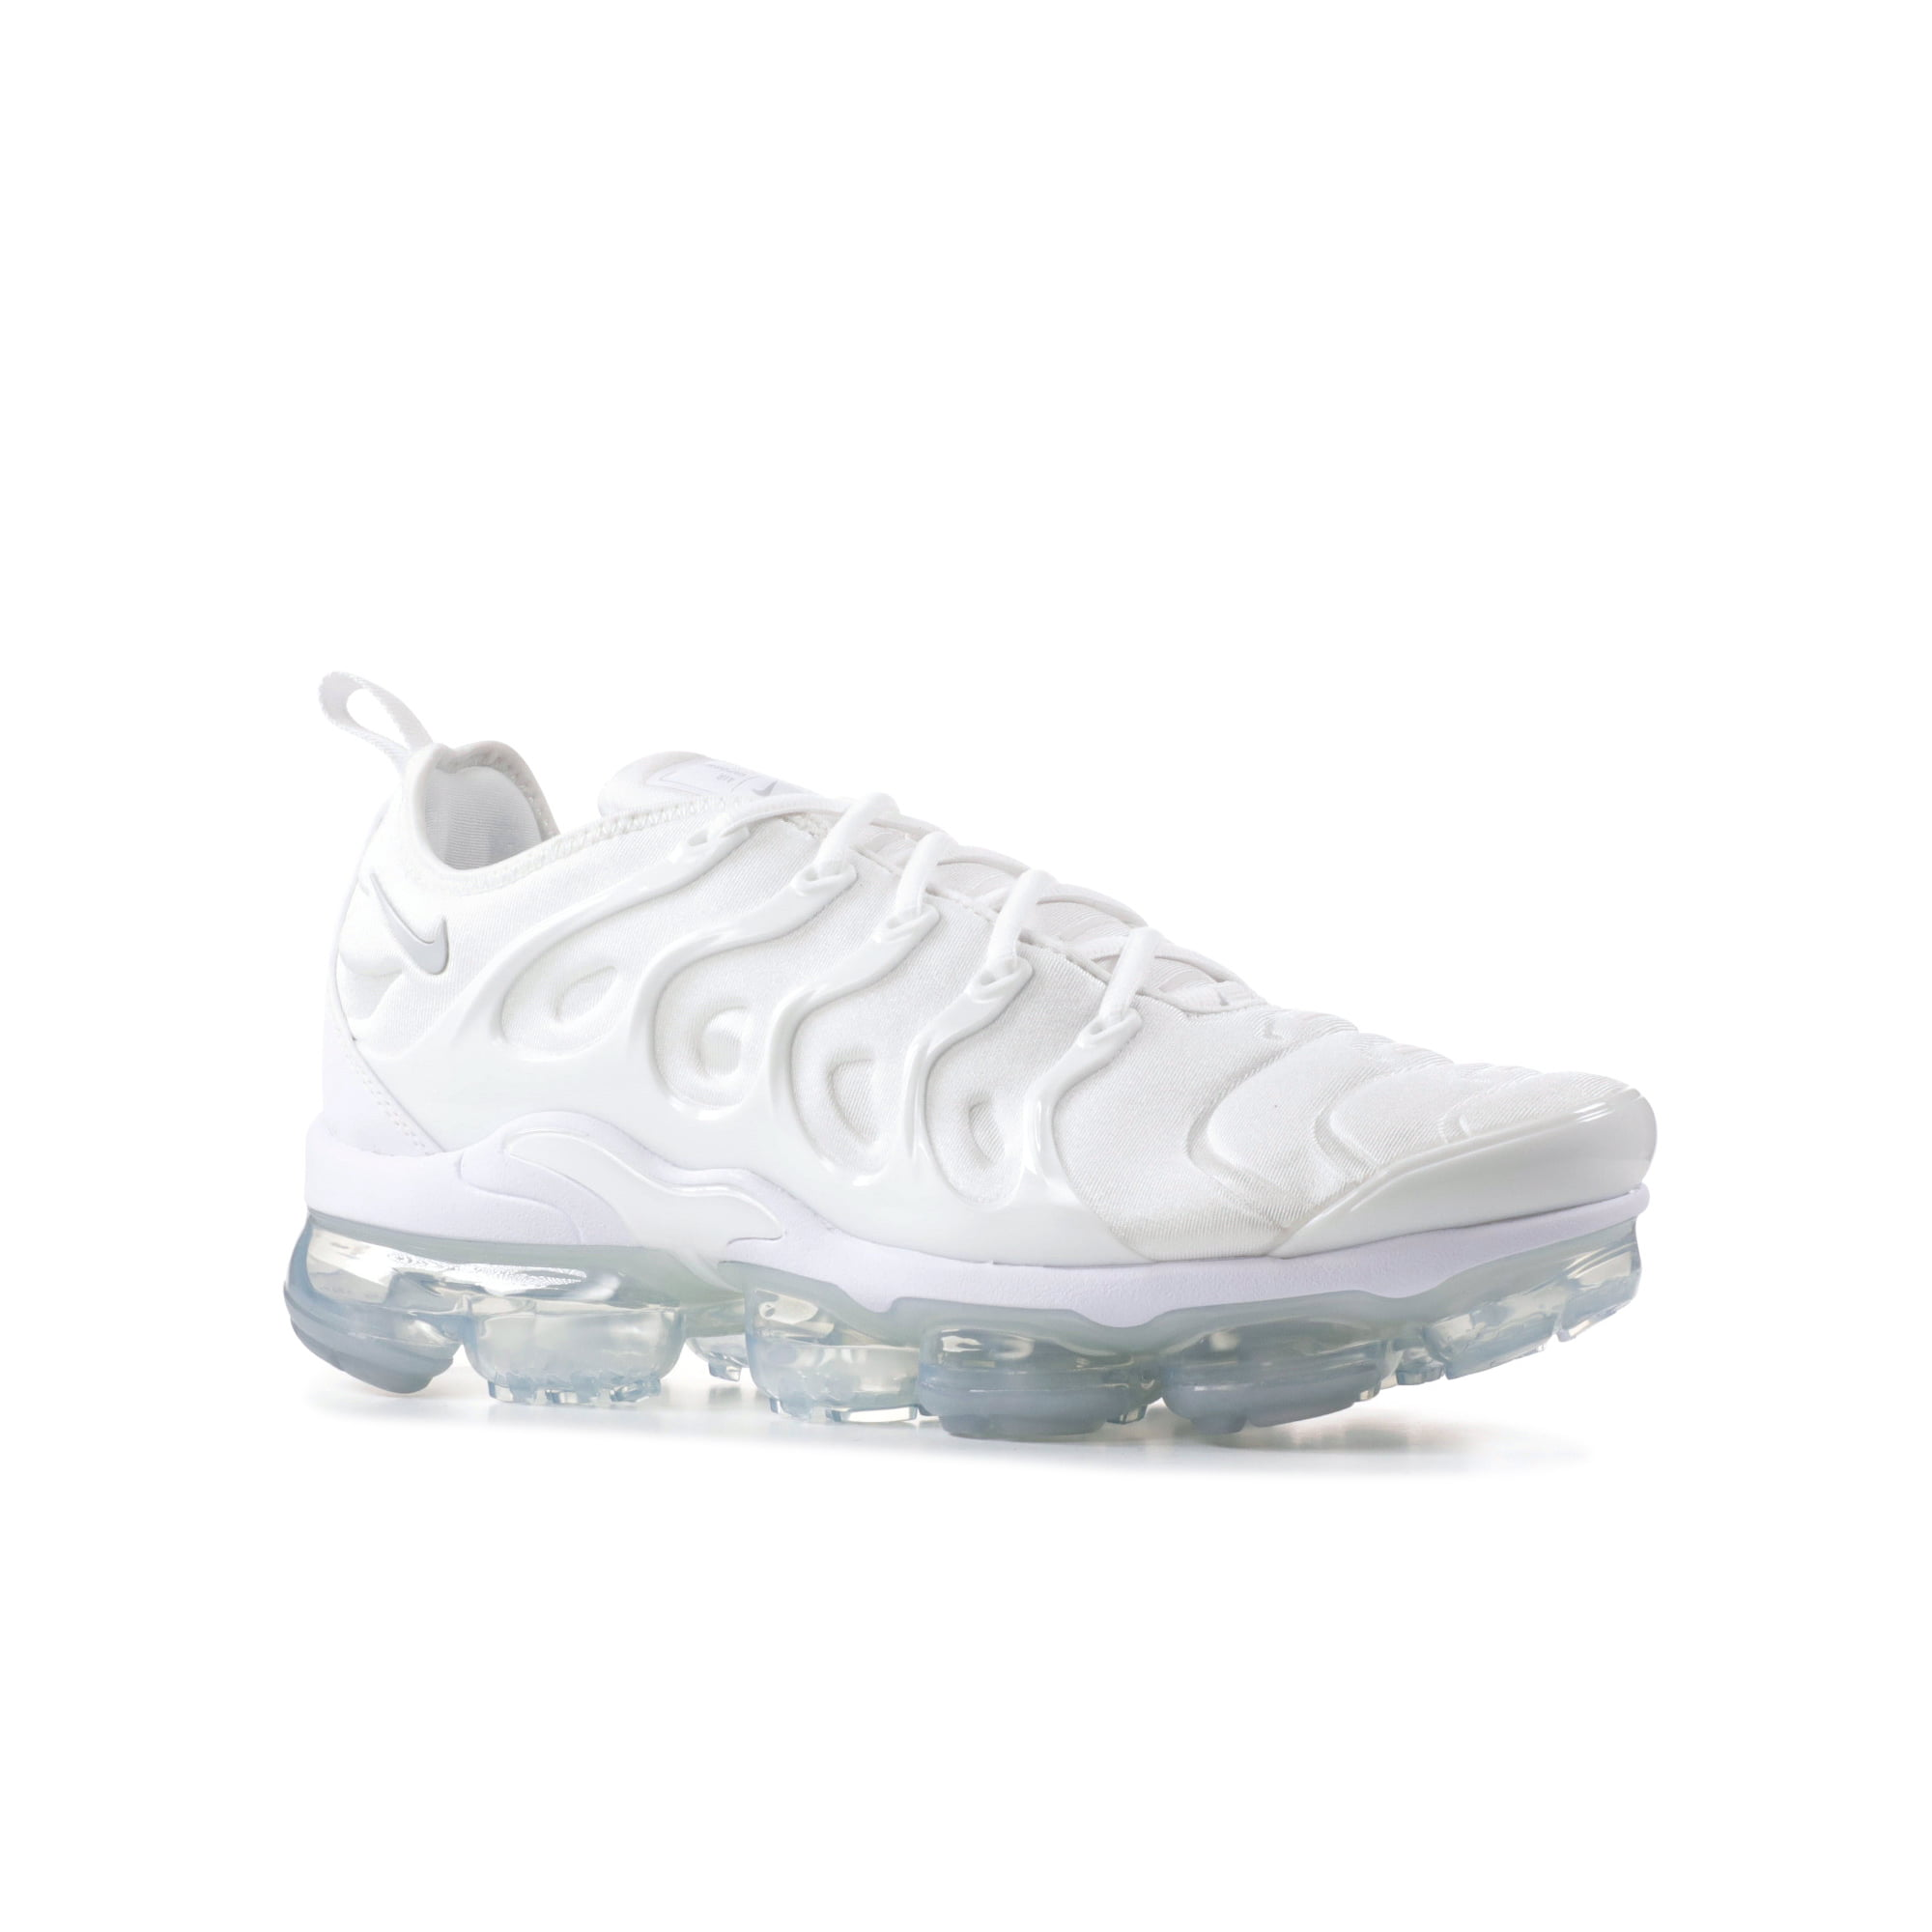 big sale cd4dc e6f69 Nike - Men - Air Vapormax Plus 'Triple White' - 924453-100 - Size 11